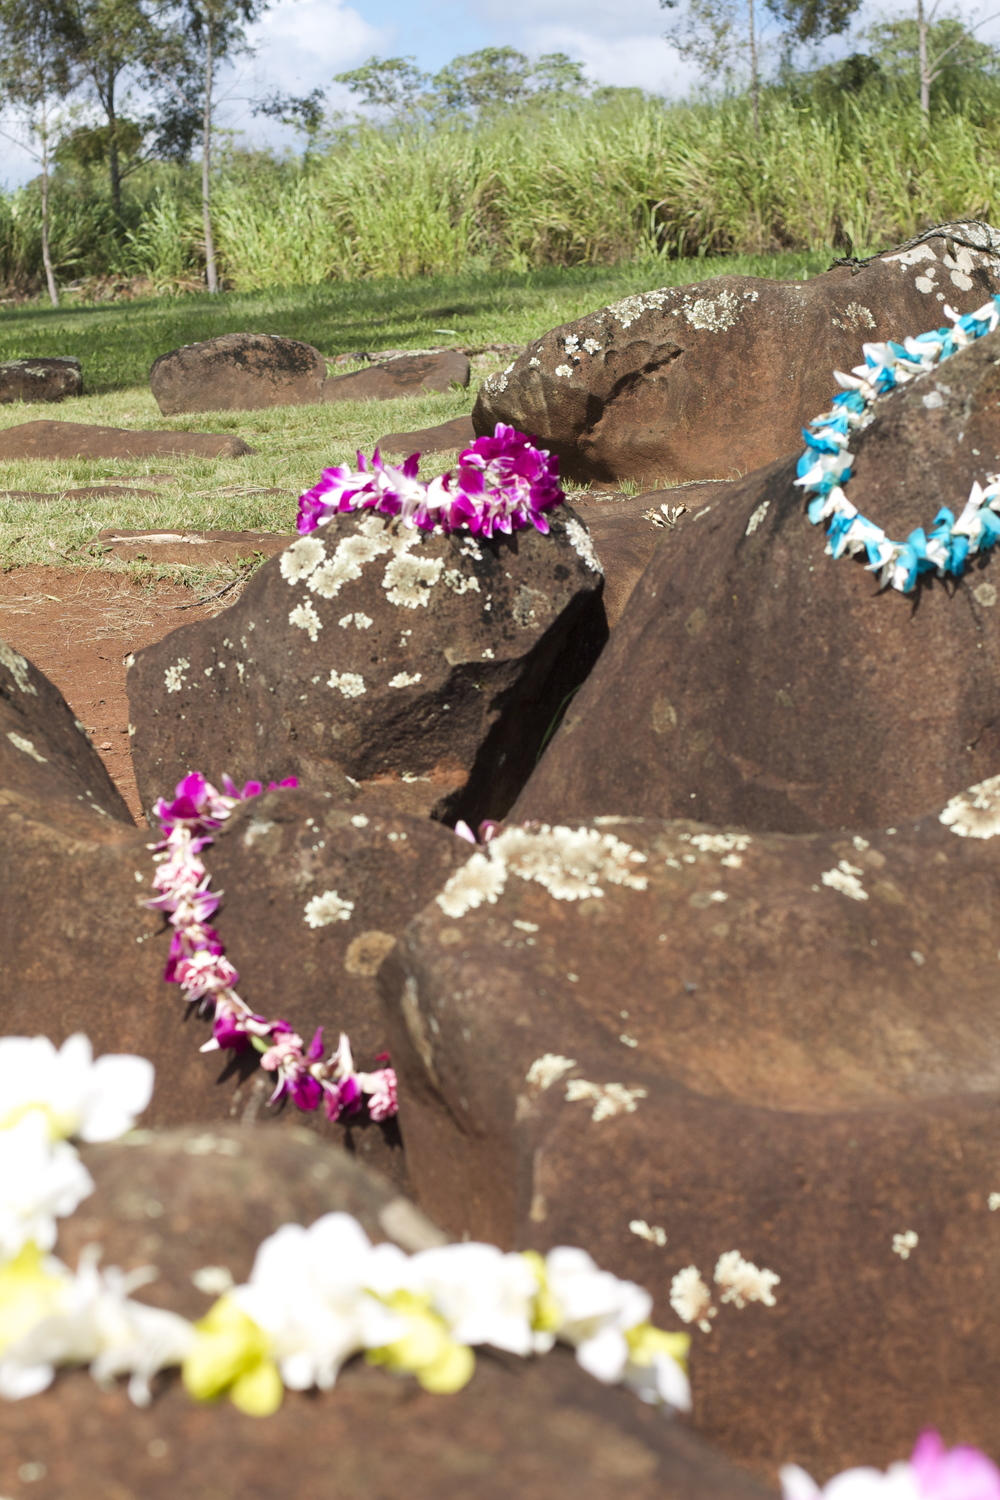 Locals stop by and leave Lei offerings as blessings on the ancient birth stones